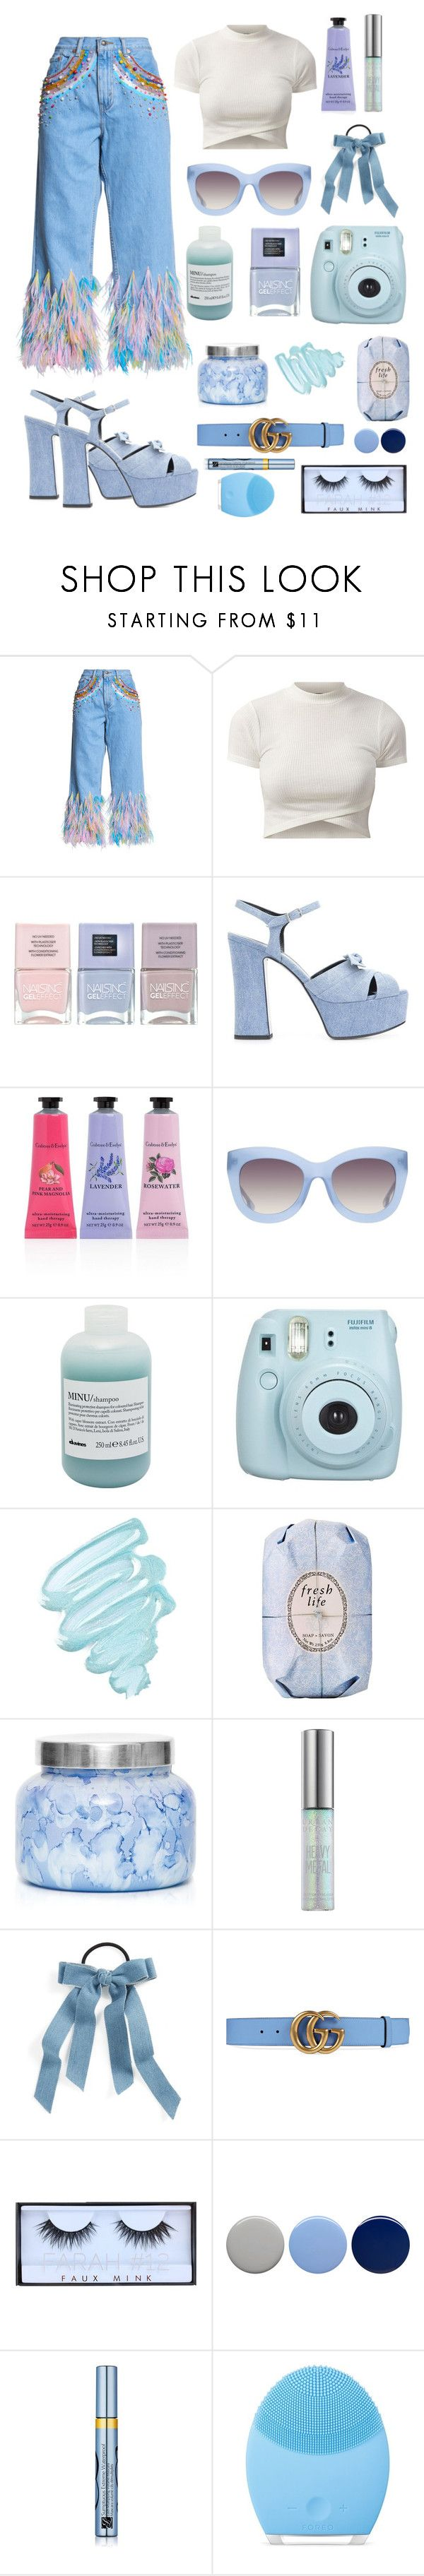 """""""Untitled #163"""" by southernunicorn ❤ liked on Polyvore featuring Romance Was Born, Nails Inc., Yves Saint Laurent, Crabtree & Evelyn, Alice + Olivia, Davines, Fujifilm, Obsessive Compulsive Cosmetics, Fresh and Capri Blue"""